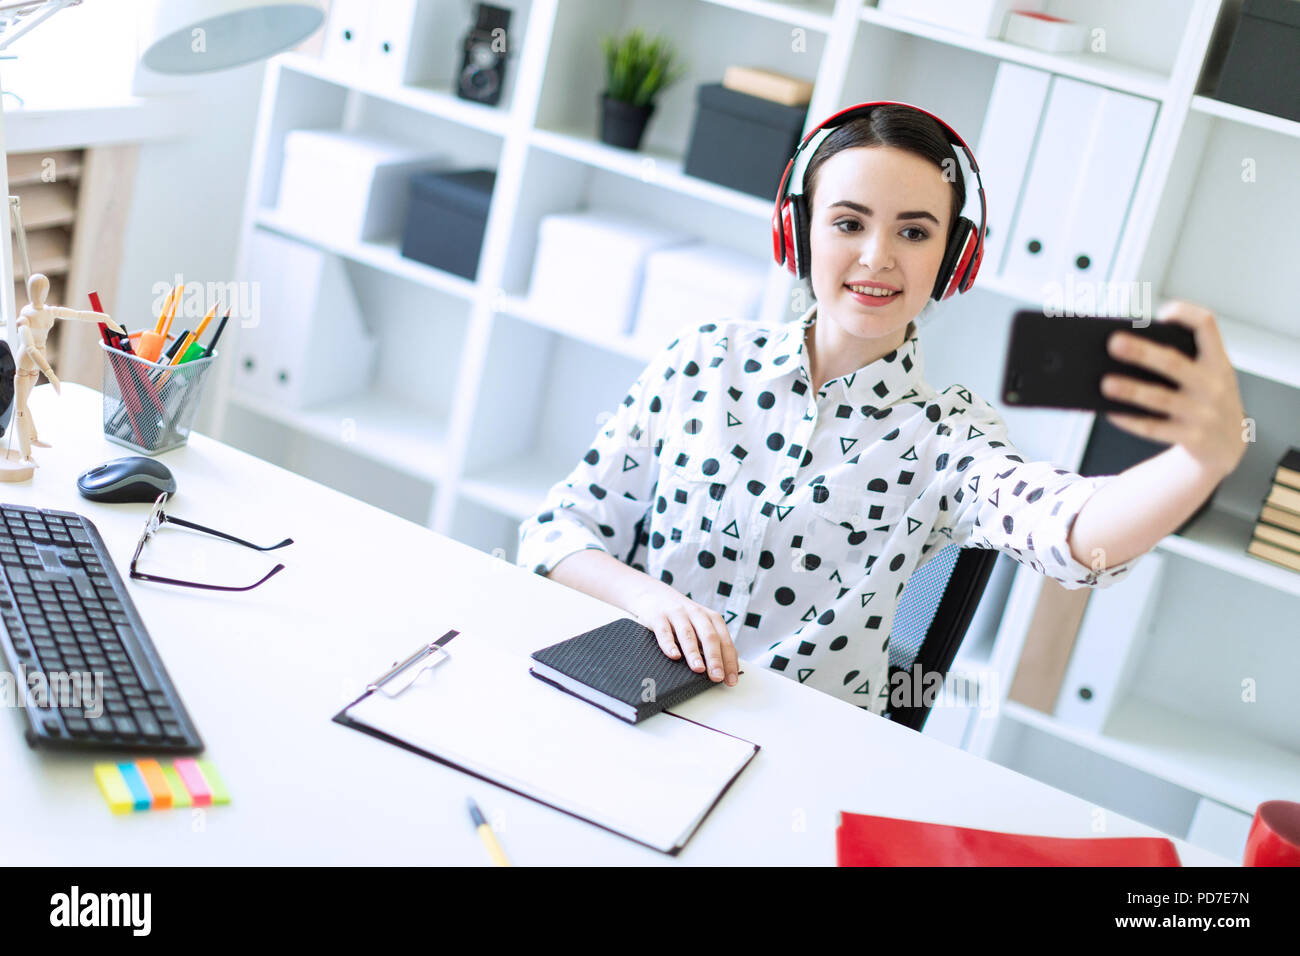 Beautiful young girl sitting in headphones at desk in office and taking pictures of herself on the phone. A photograph with a depth of sharpness, a highlighted focus on the girl. - Stock Image